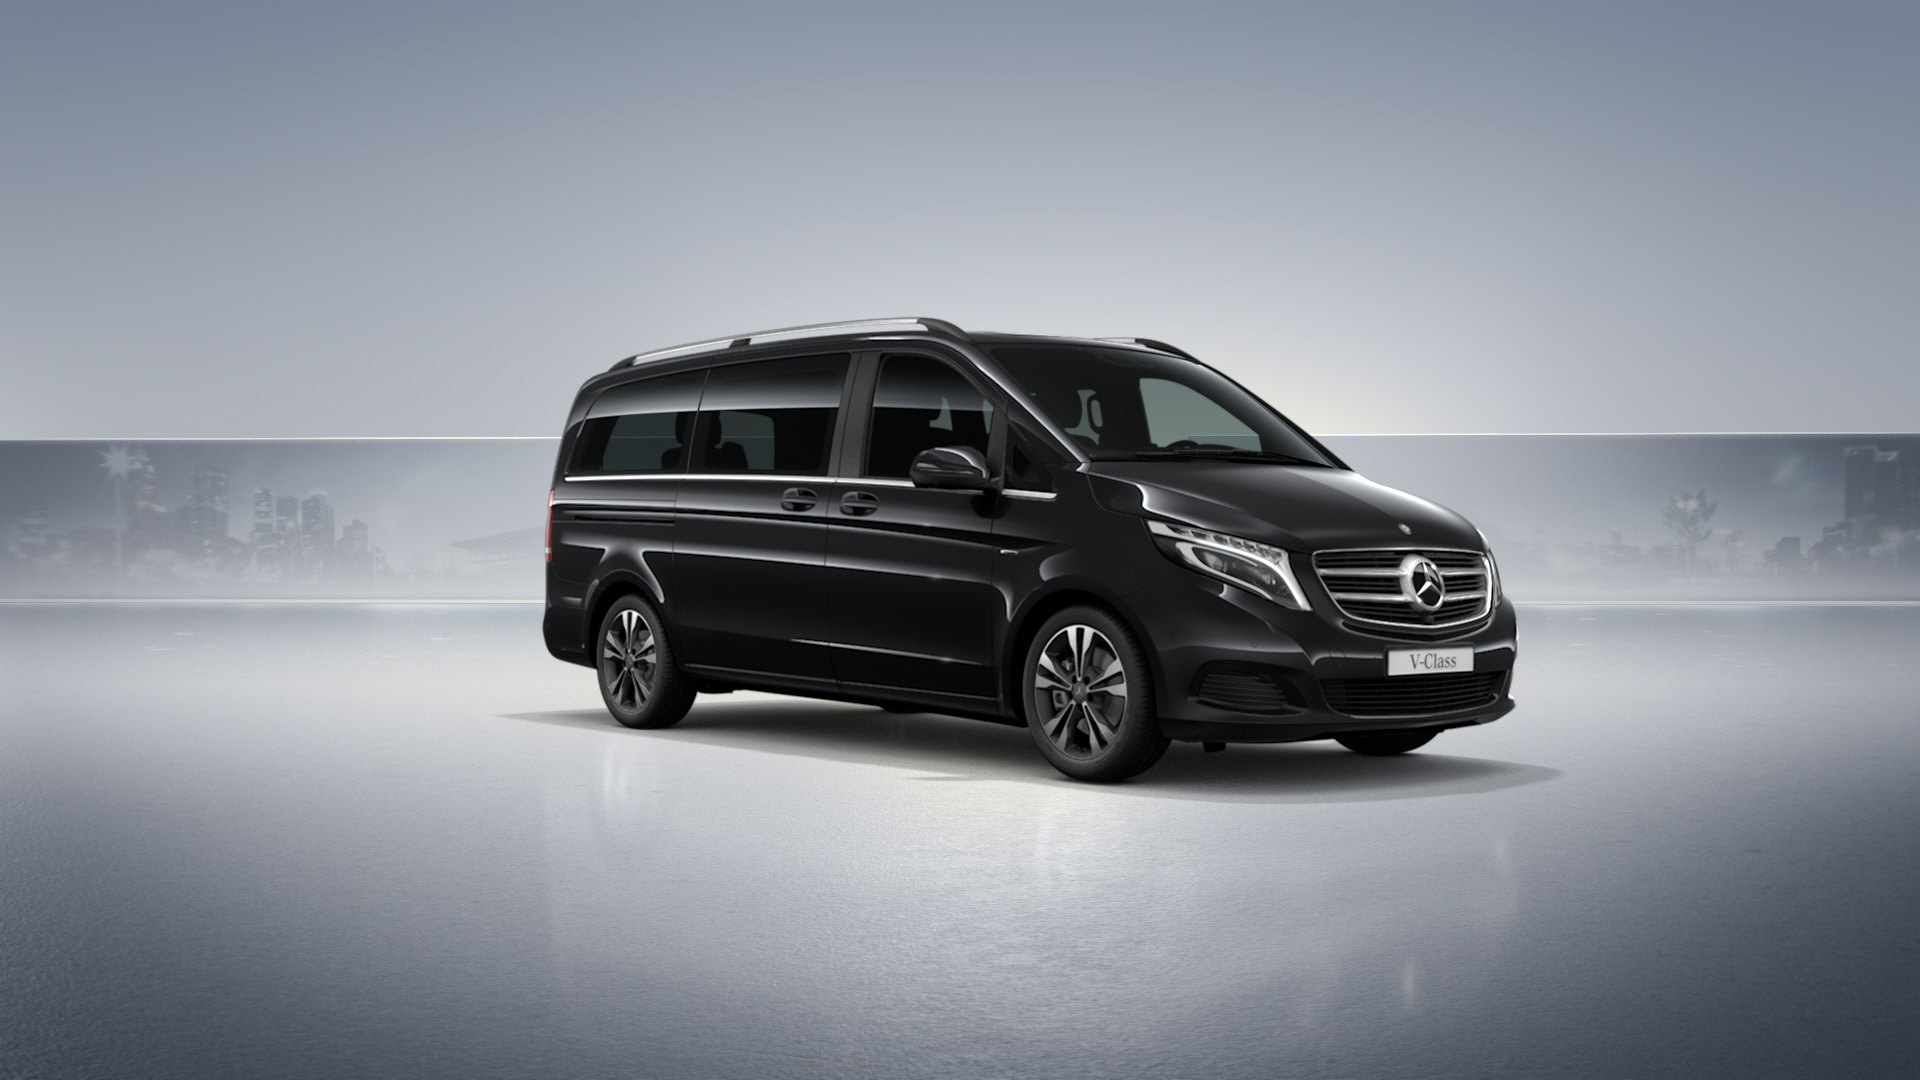 mercedes benz v class xl vip 4matic alphubel limousine. Black Bedroom Furniture Sets. Home Design Ideas